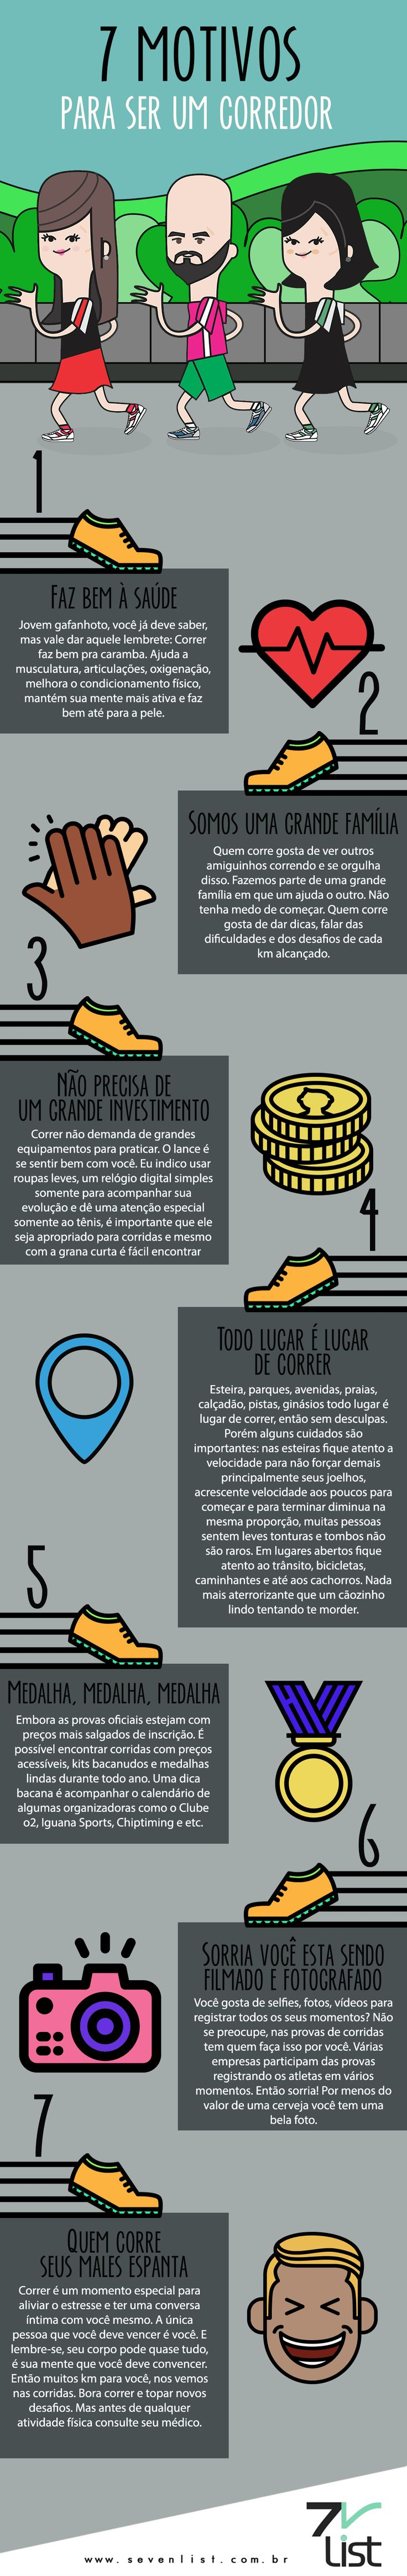 Uma verdadeira maratona de atletas amadores aumenta a cada ano e você aí com vontade de fazer parte, mas tem medo de começar. Então estique o esqueleto e vamos lá. #SevenList #Lista #Infográfico #Art #Design #Fit #Fitness #Correr #Run #Runner #Workout #Exercise #Corrida #Motivosparacorrer